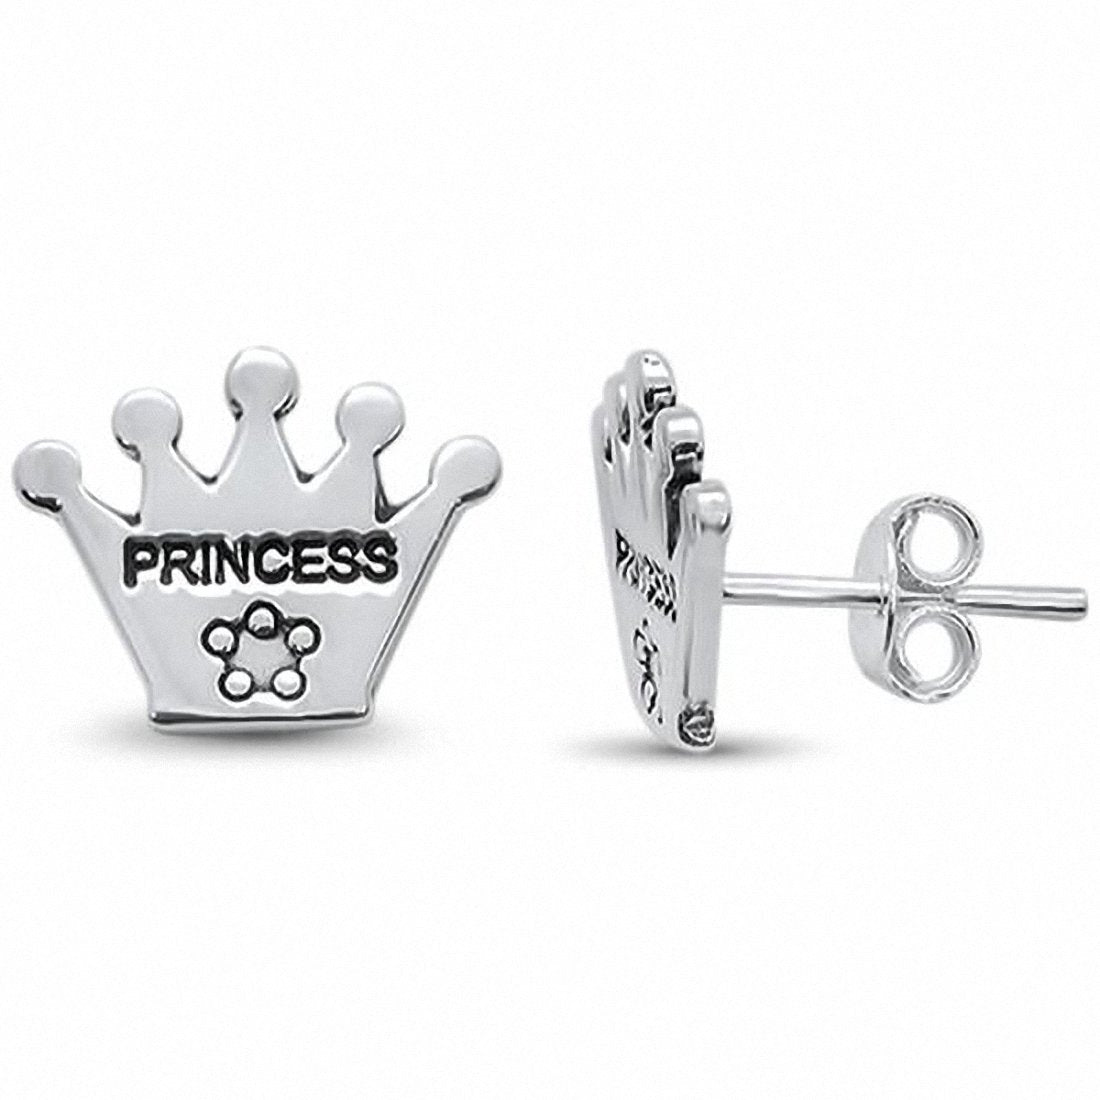 Princess Crown Stud Earrings 925 Sterling Silver Choose Color